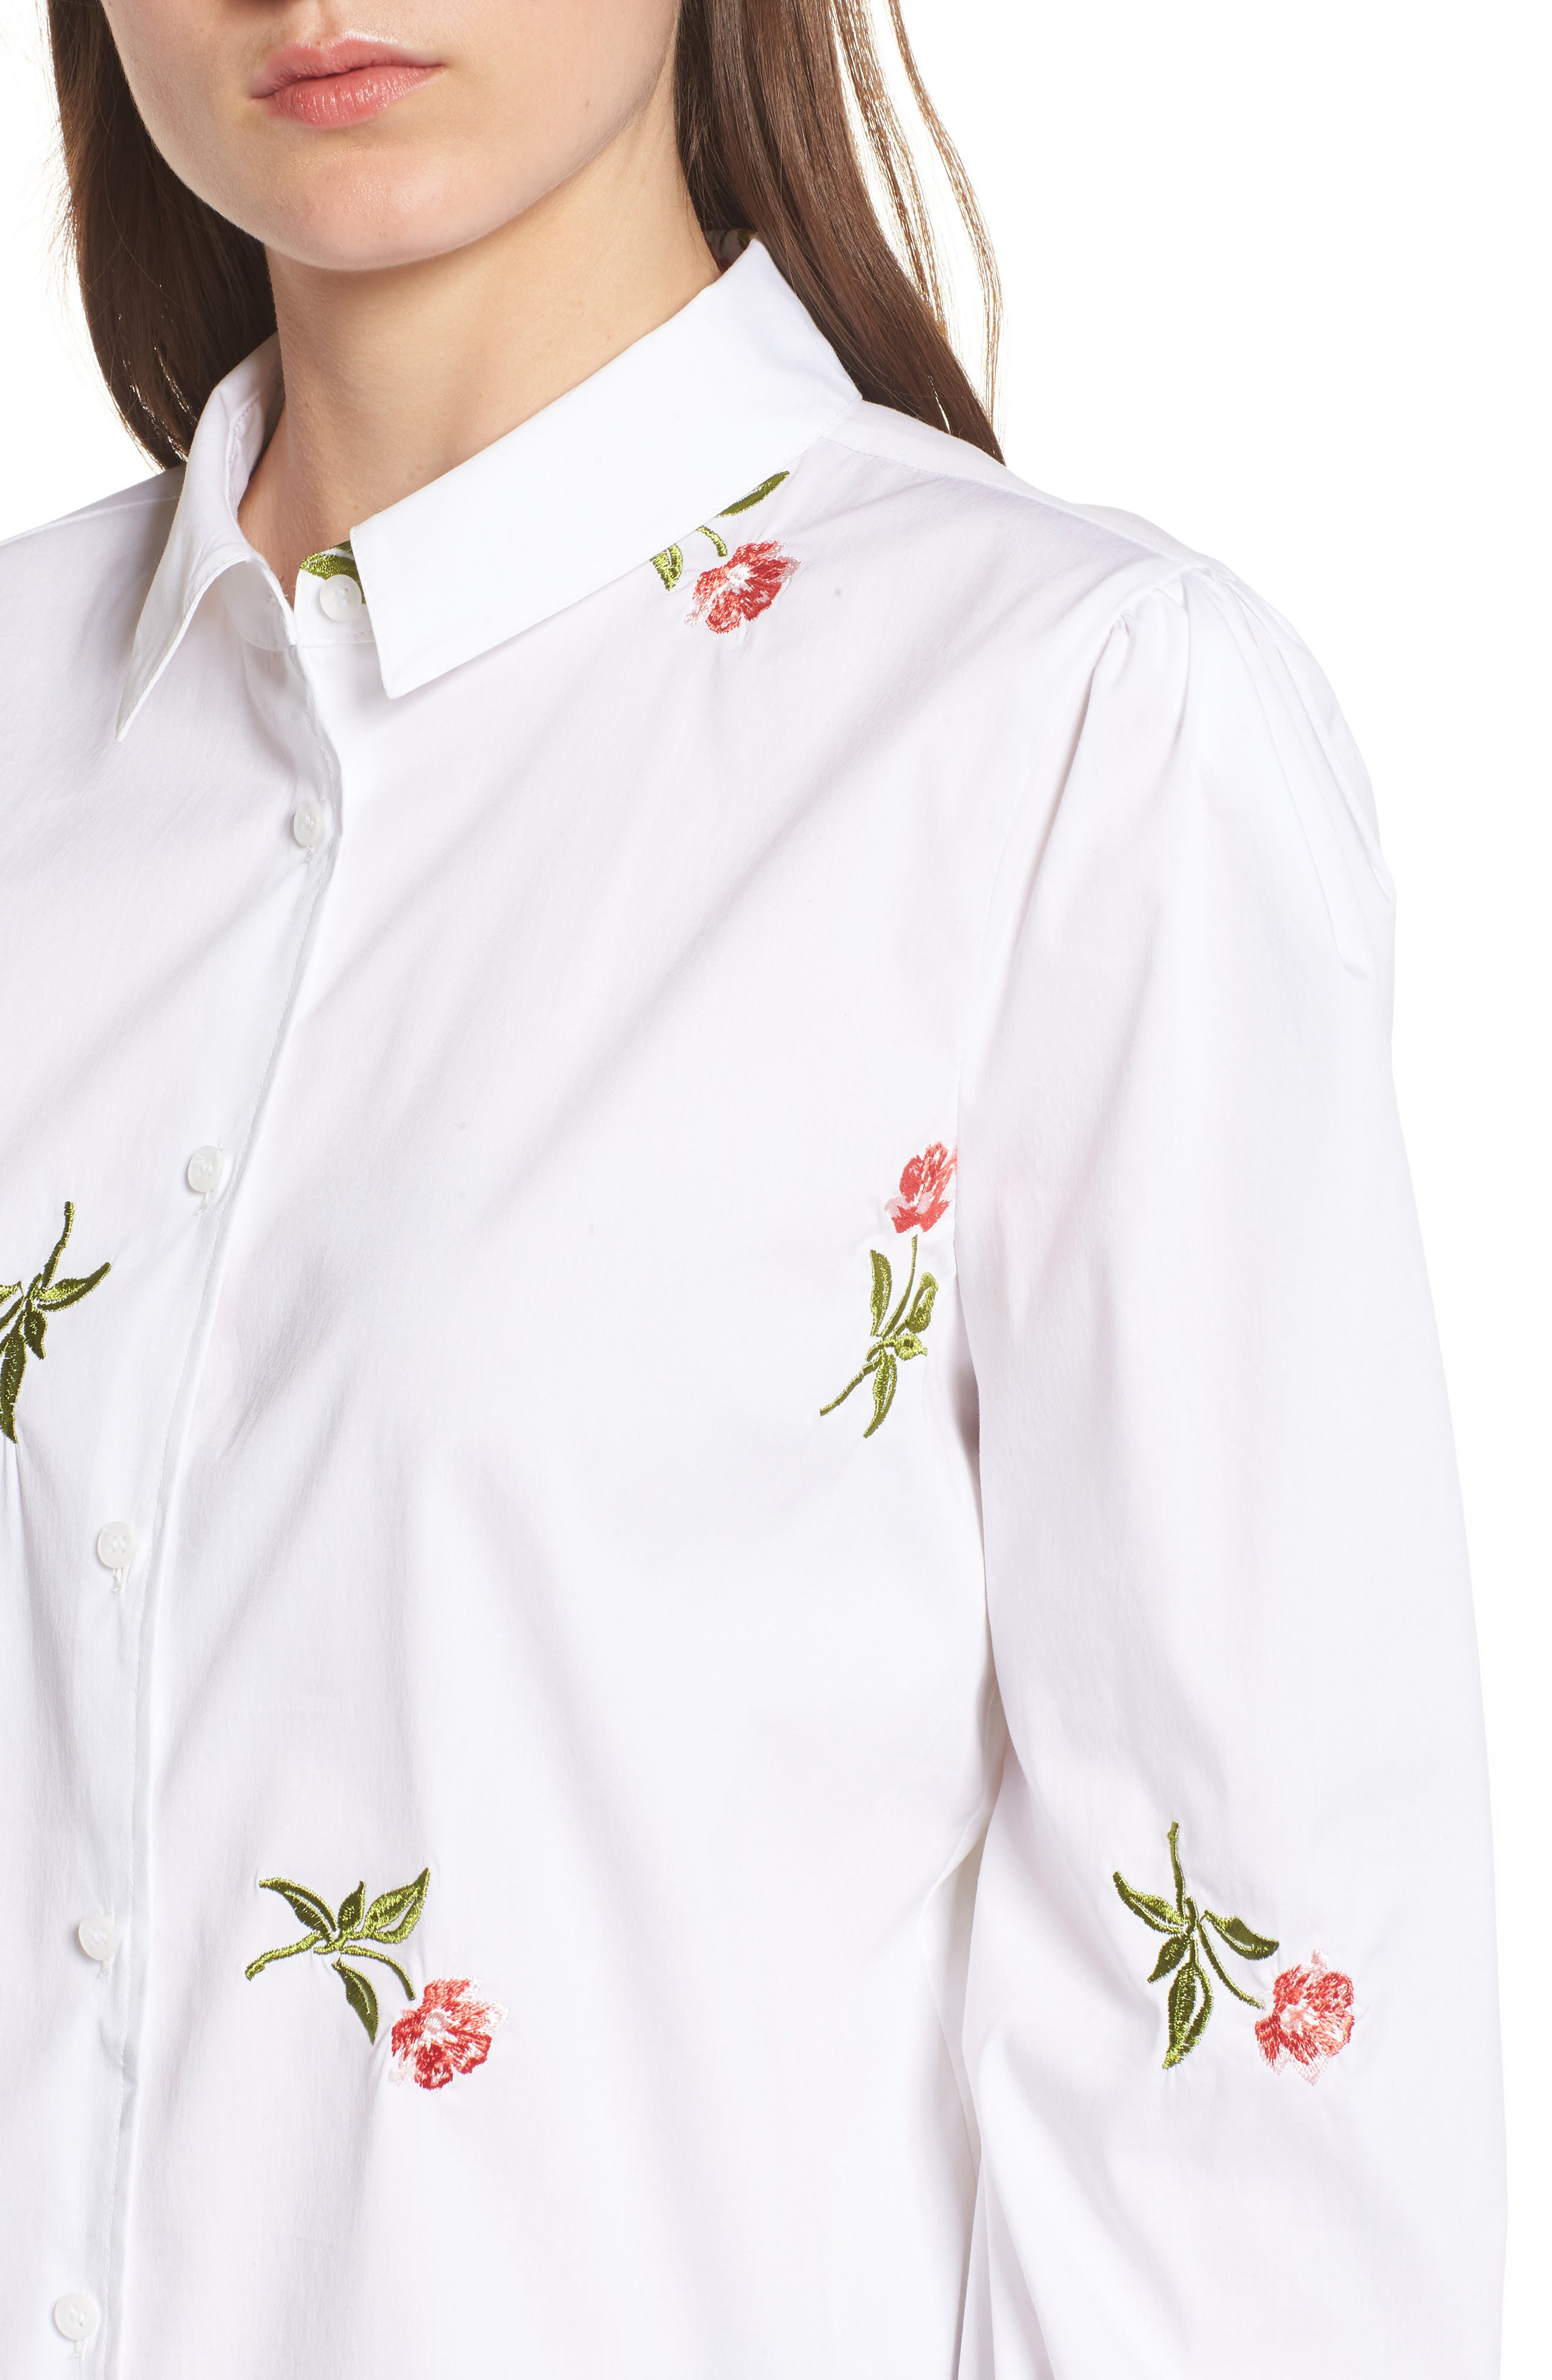 CHELSEA28,                             Embroidered Woven Shirt,                             Alternate thumbnail 4, color,                             WHITE- CORAL BUD EMBROIDERY